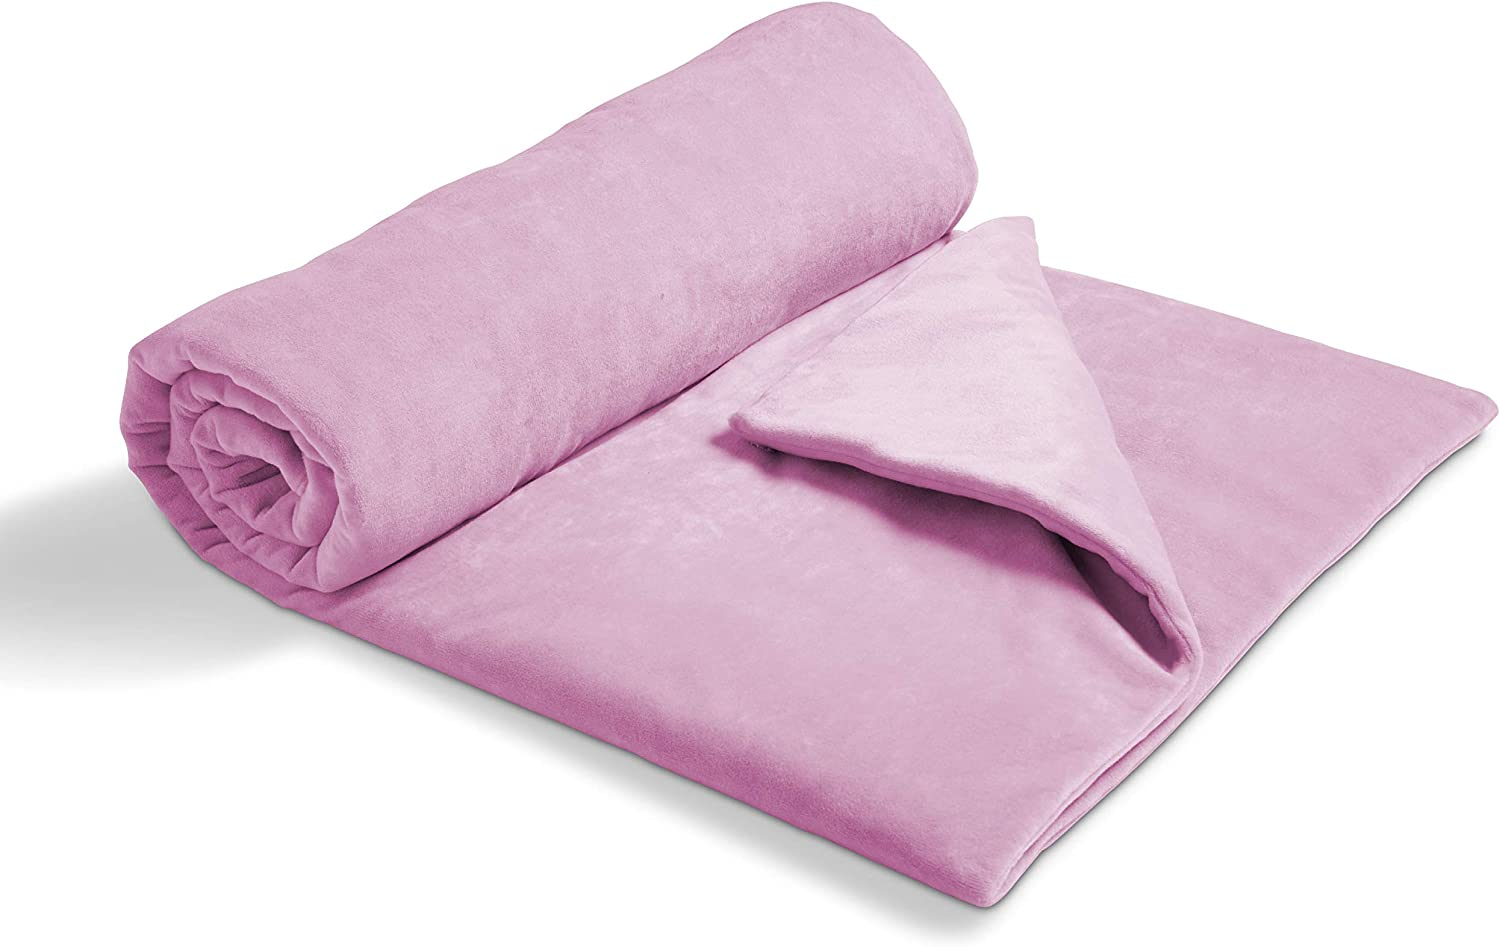 5 Pounds; Soft and Breathable Cover is Removable for Easy Washing; Weighted with Premium Glass Beads; 36 x 48 Pink Delta Children Weighted Blanket for Toddlers and Kids